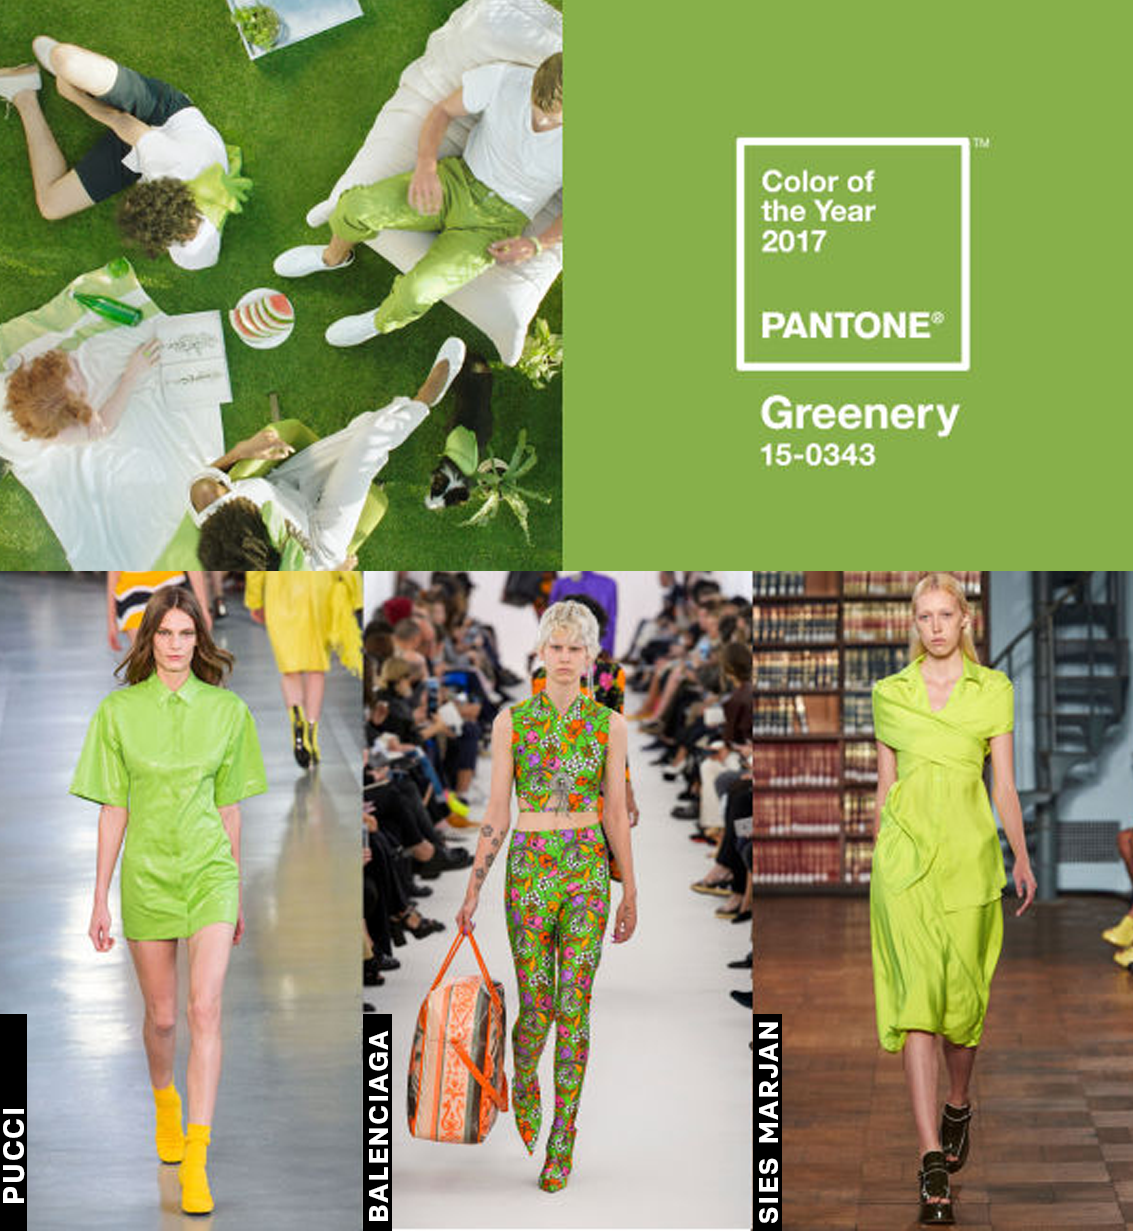 greenery-cor-do-ano-pantone-2